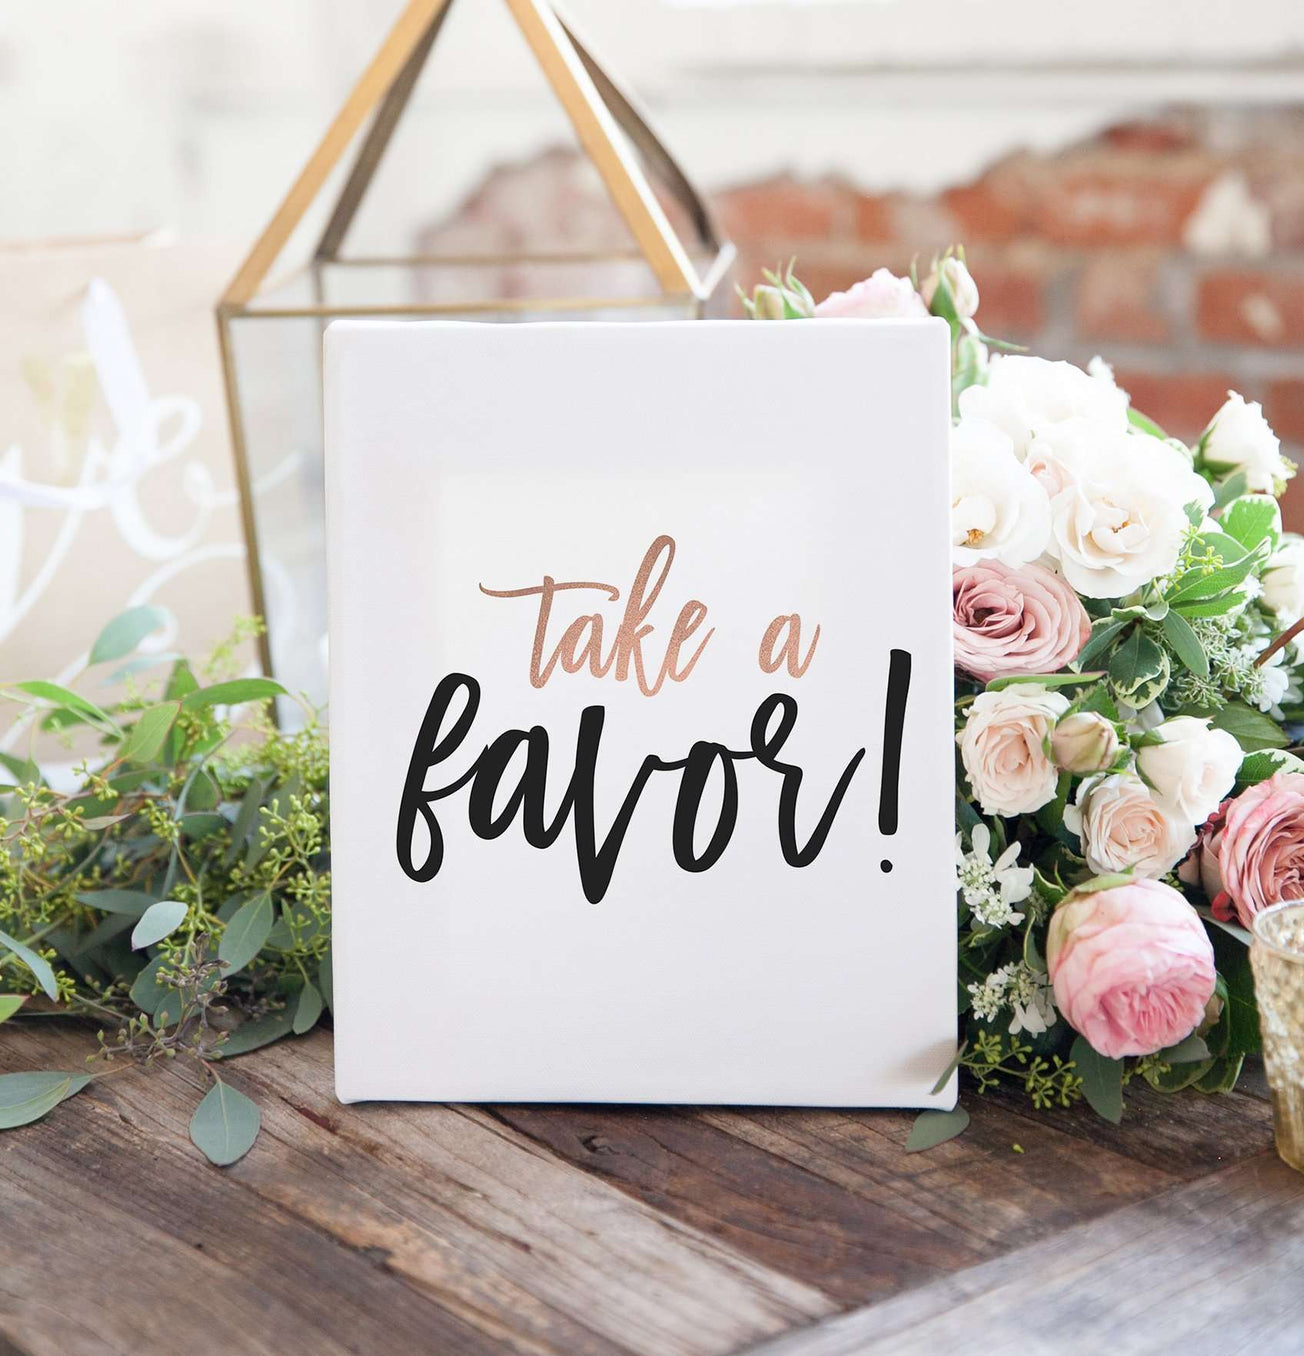 Wedding Sign - Take a Favor Sign - The Penny